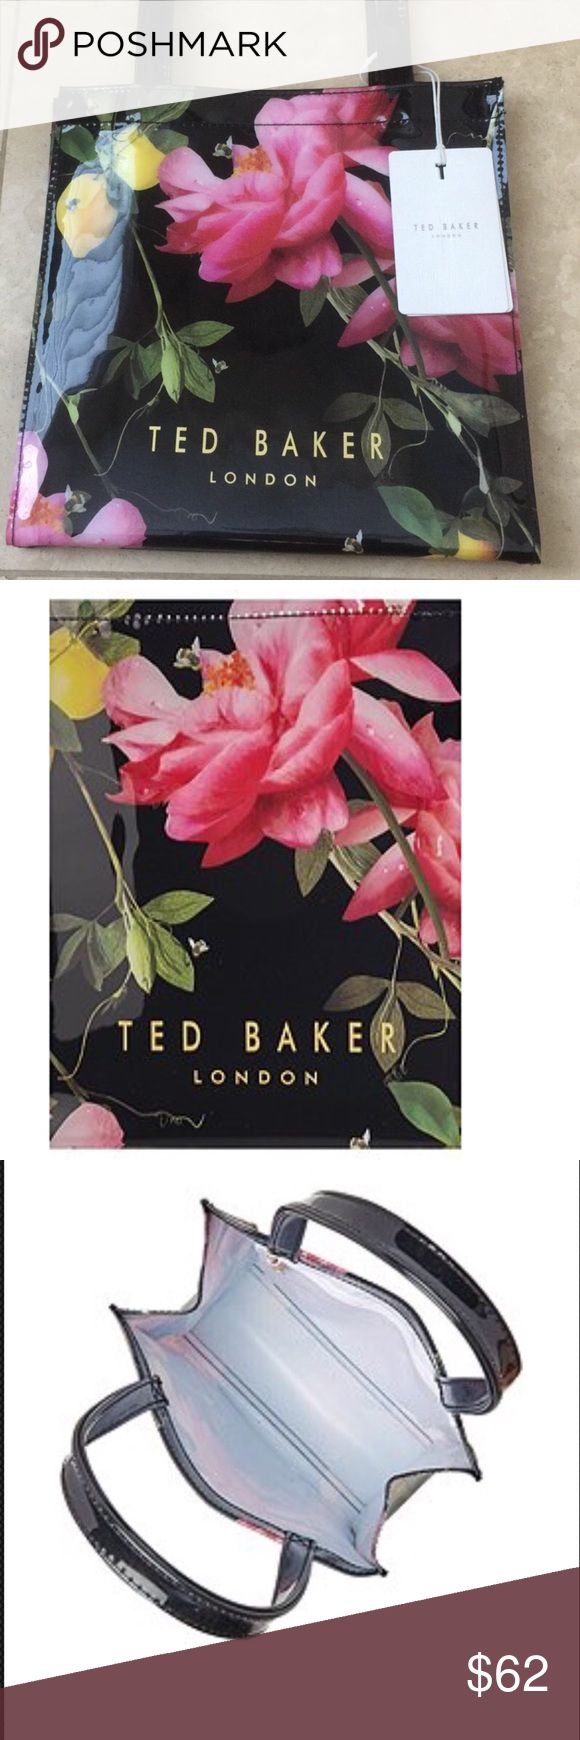 """Authentic Ted Baker Izzicon Small Tote Authentic Ted Baker London Izzicon Tote, 10"""" x 9 1/2"""" x 4 1/2"""", Strap Drop 7"""", BRAND NEW WITH TAGS❌NO TRADES❌ Ted Baker London Bags Totes"""